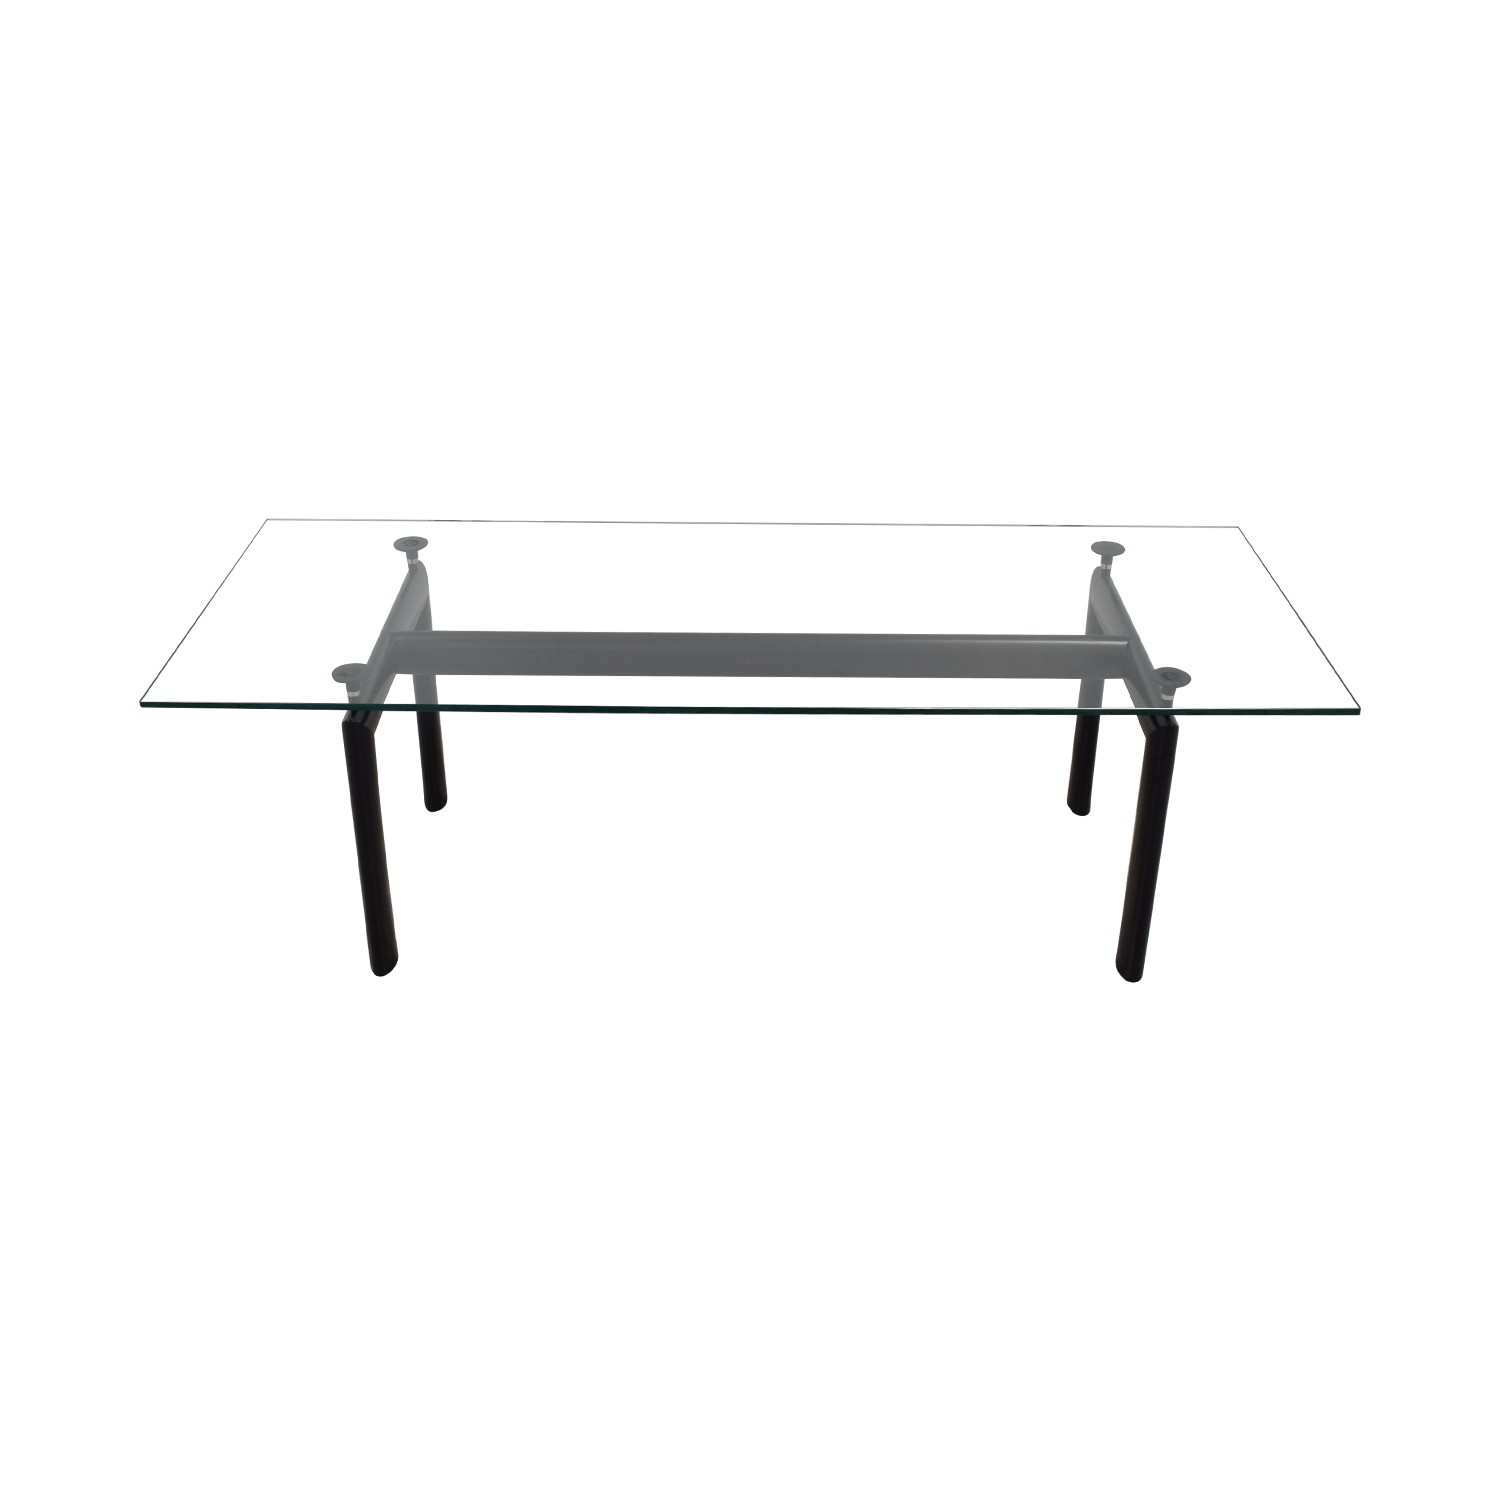 ... Design Within Reach Design Within Reach Cassina Le Corbusier Glass  Dining Table Black/Glass ...